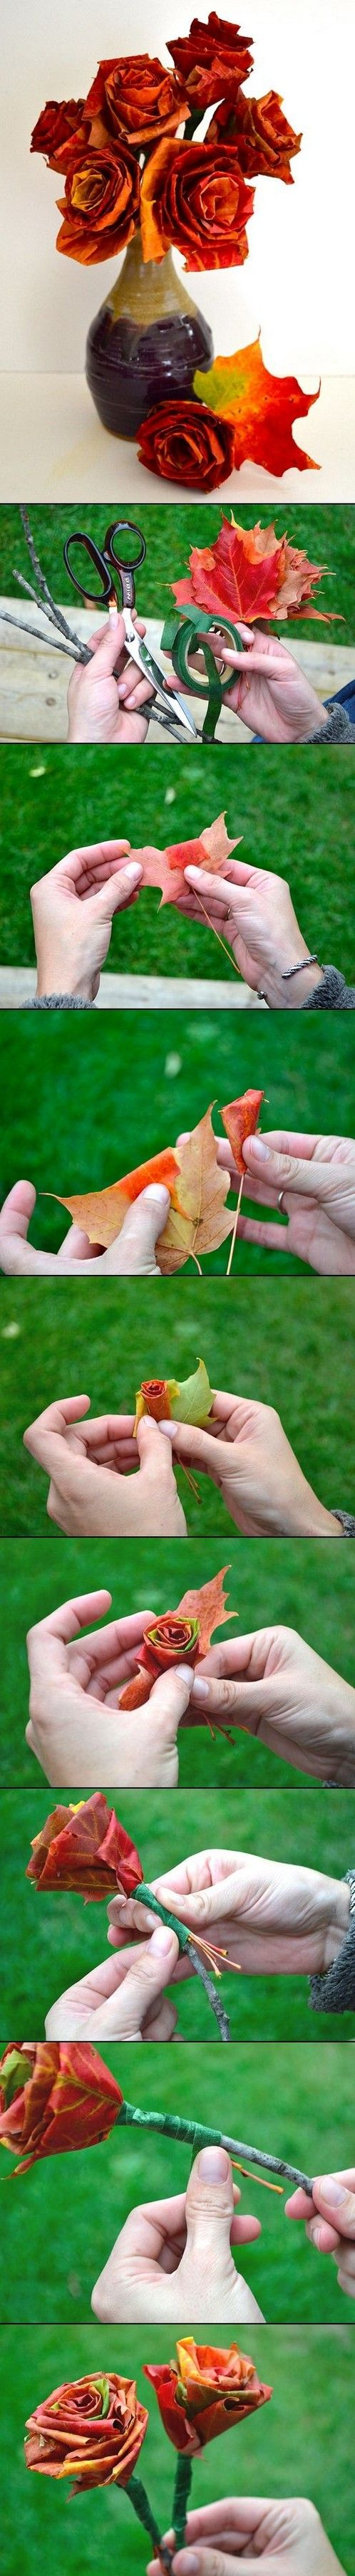 15-fun-and-stylish-diy-projects-and-decorations-for-autumn-2016-12